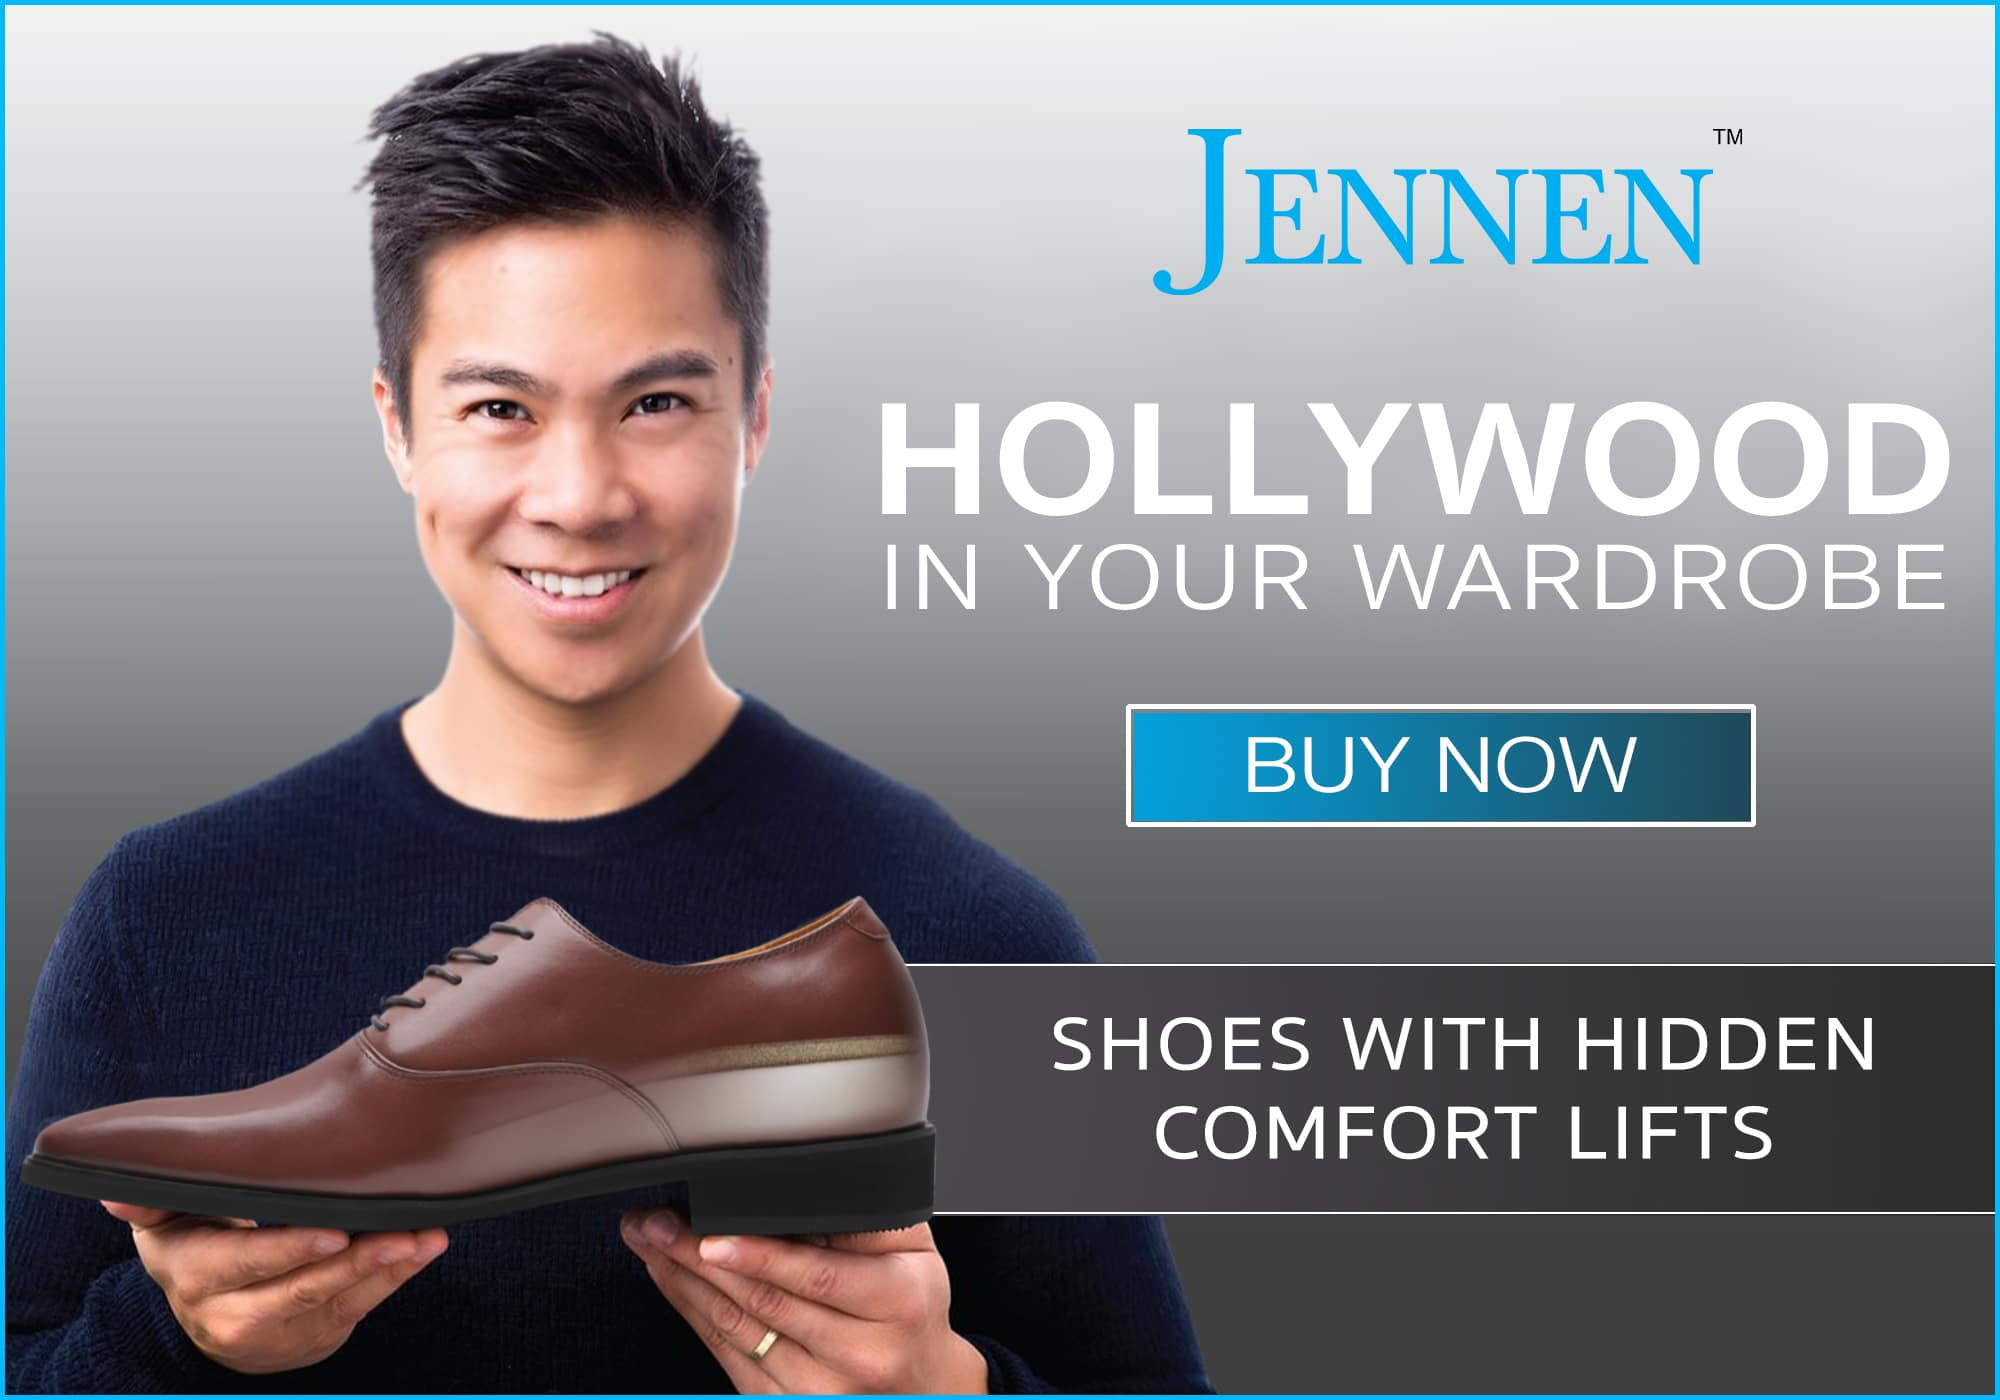 Stand Taller with JENNEN shoes